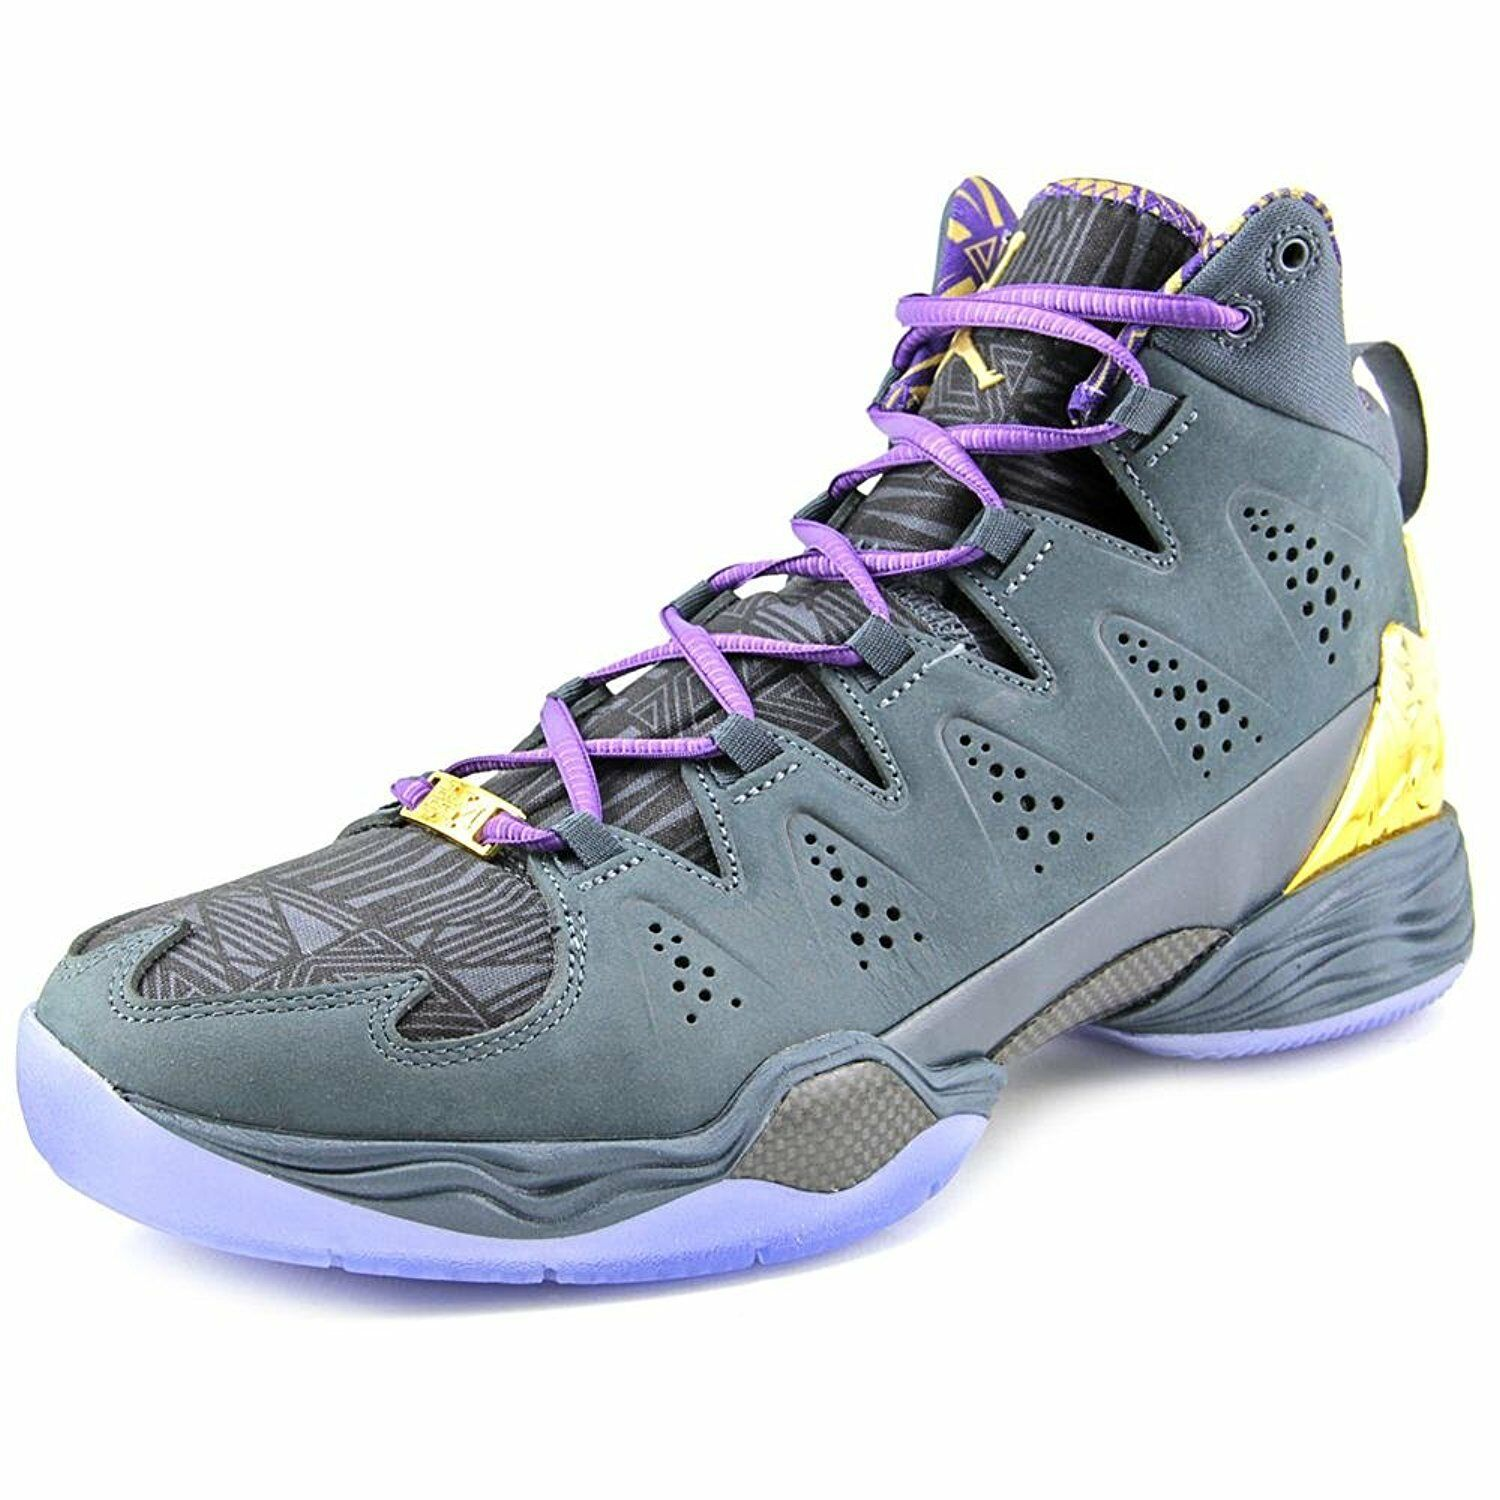 Nike Jordan Melo M10 BHM BLACK HISTORY MONTH Mens basketball Comfortable New shoes for men and women, limited time discount